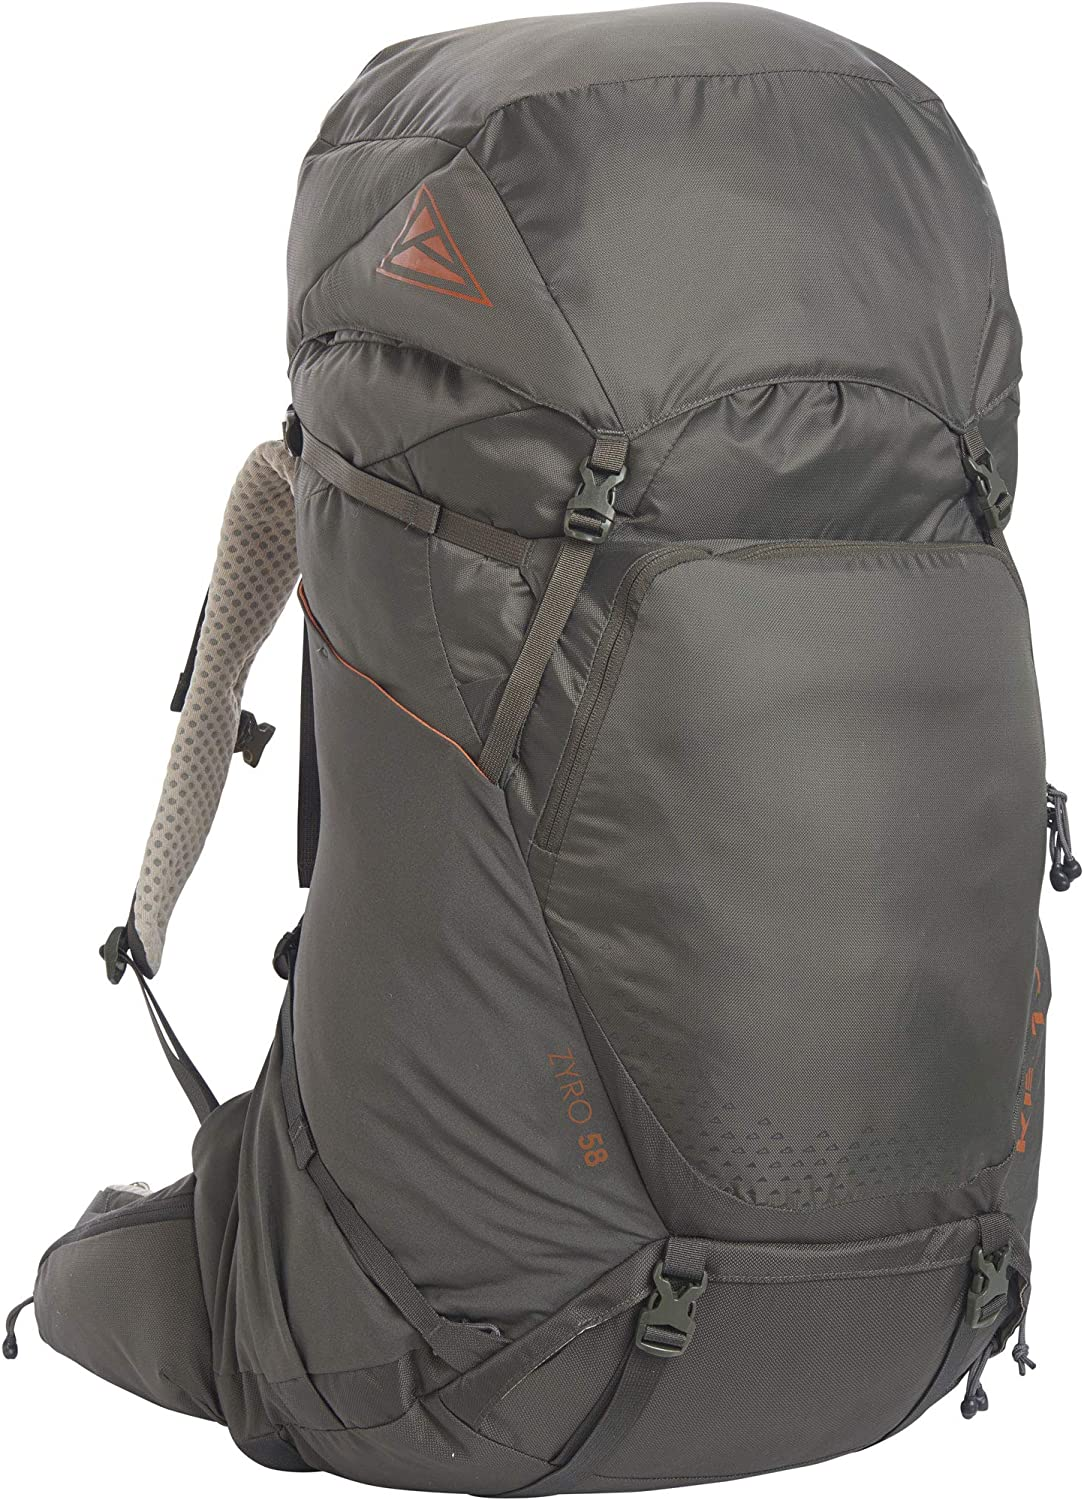 Kelty Zyro 58 Hiking Backpack – Hiking, Backpacking Travel Backpack Hydration Compatible